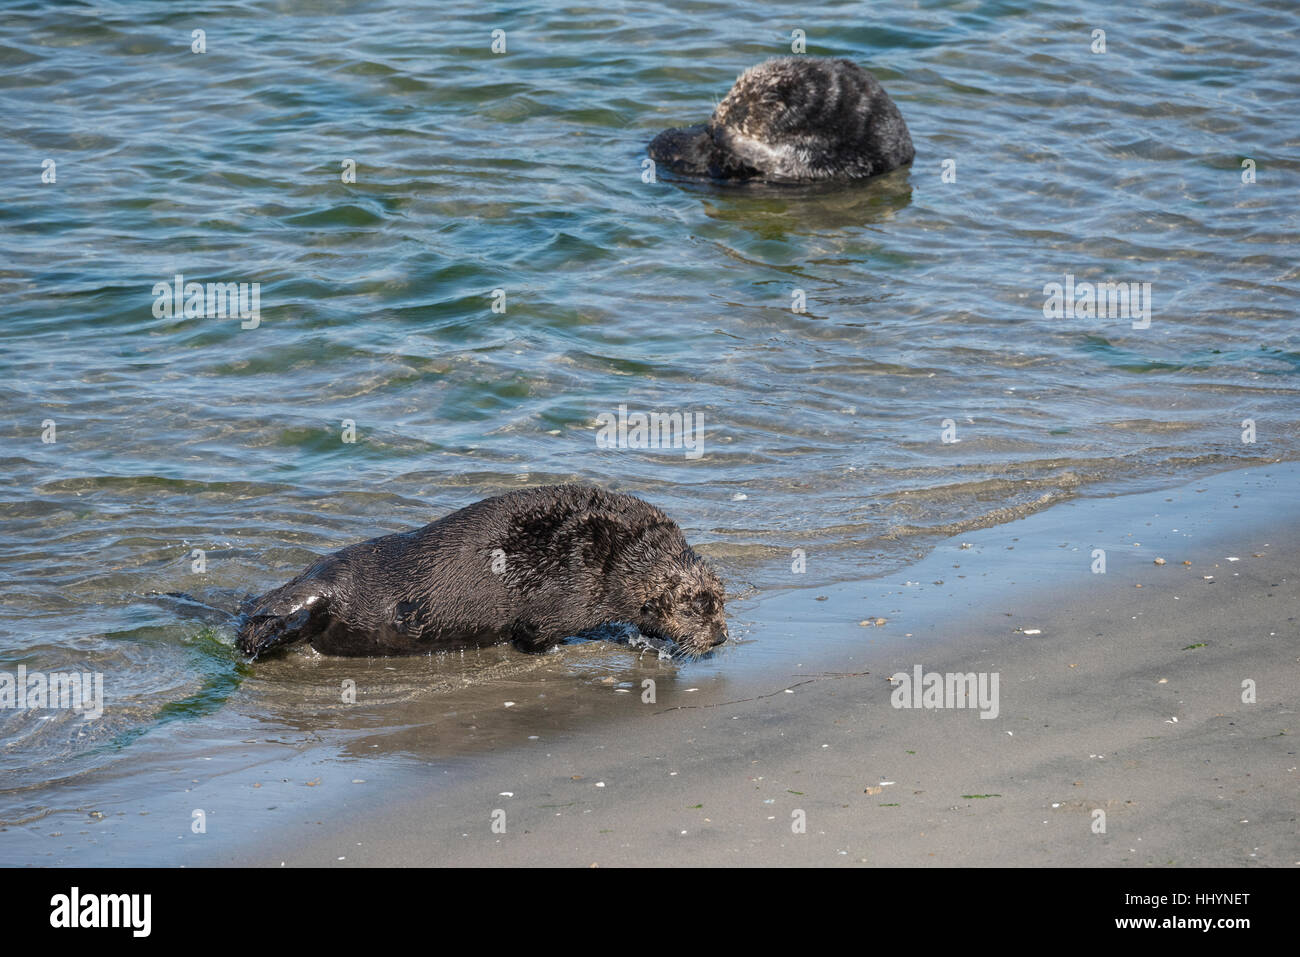 California sea otter or southern sea otter, Enhydra lutris nereis, comes ashore to bask on the beach, Elkhorn Slough, - Stock Image